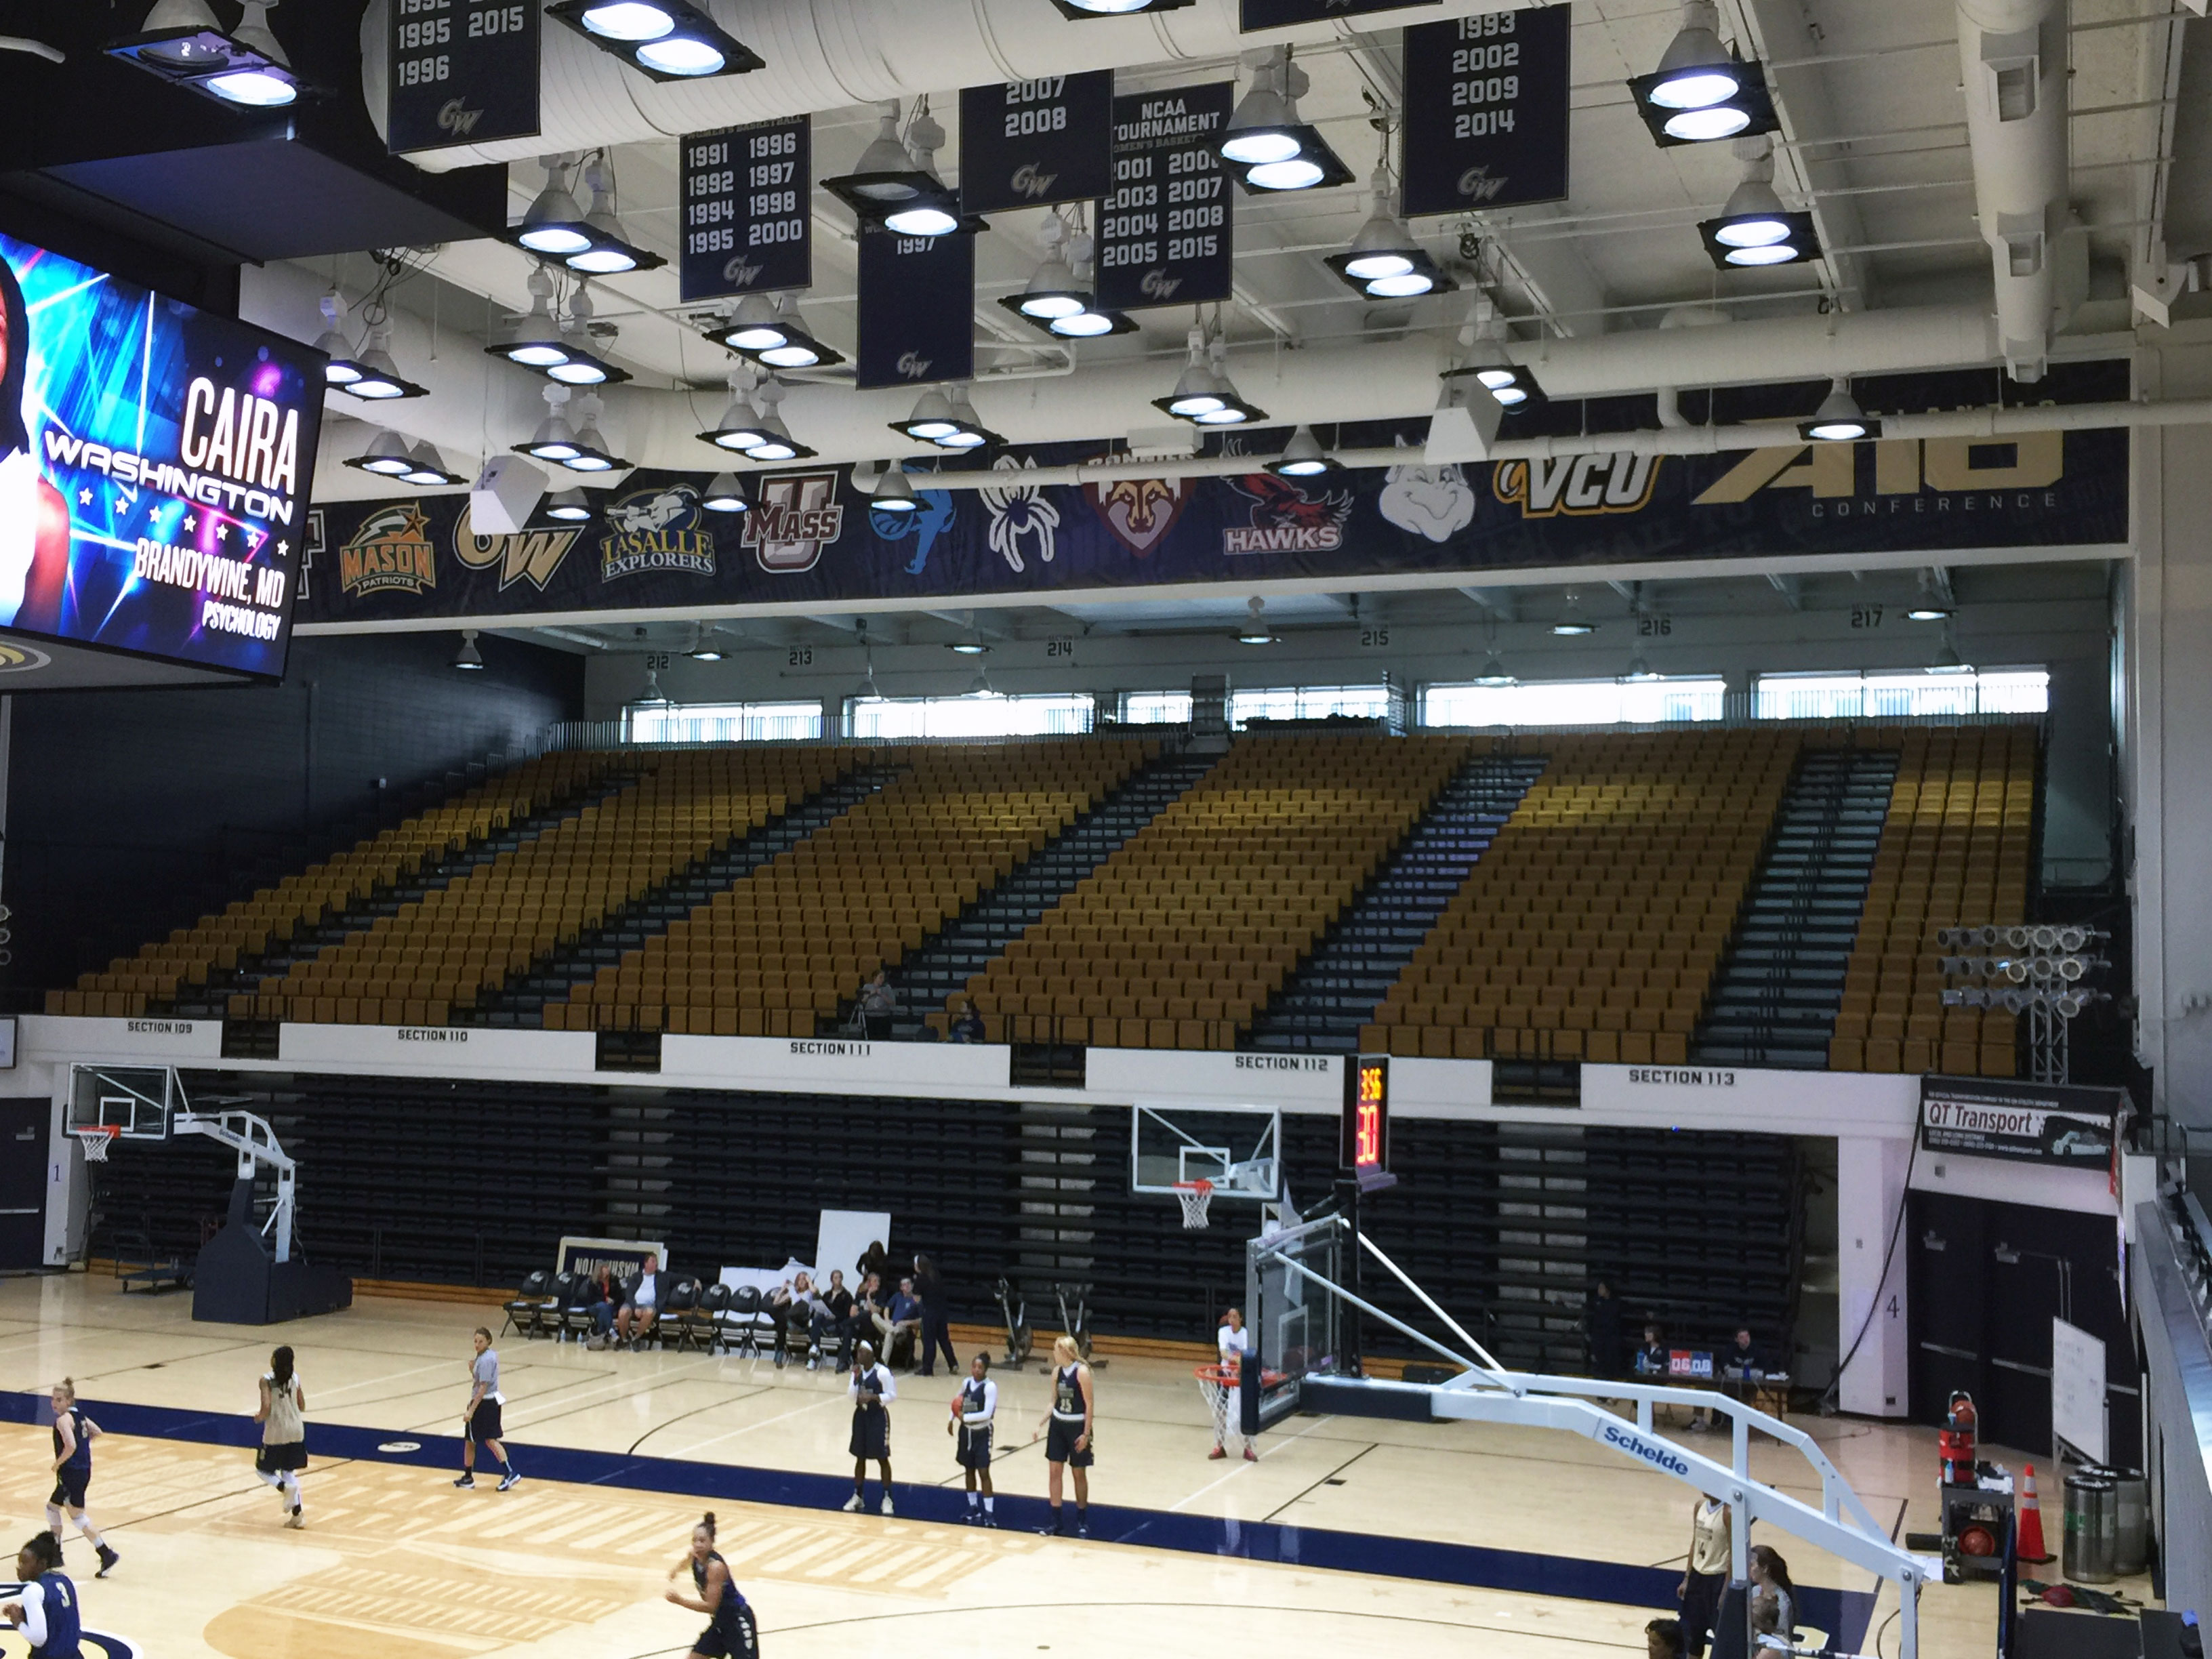 George Washington University Smith Center arena branding large format beam banners